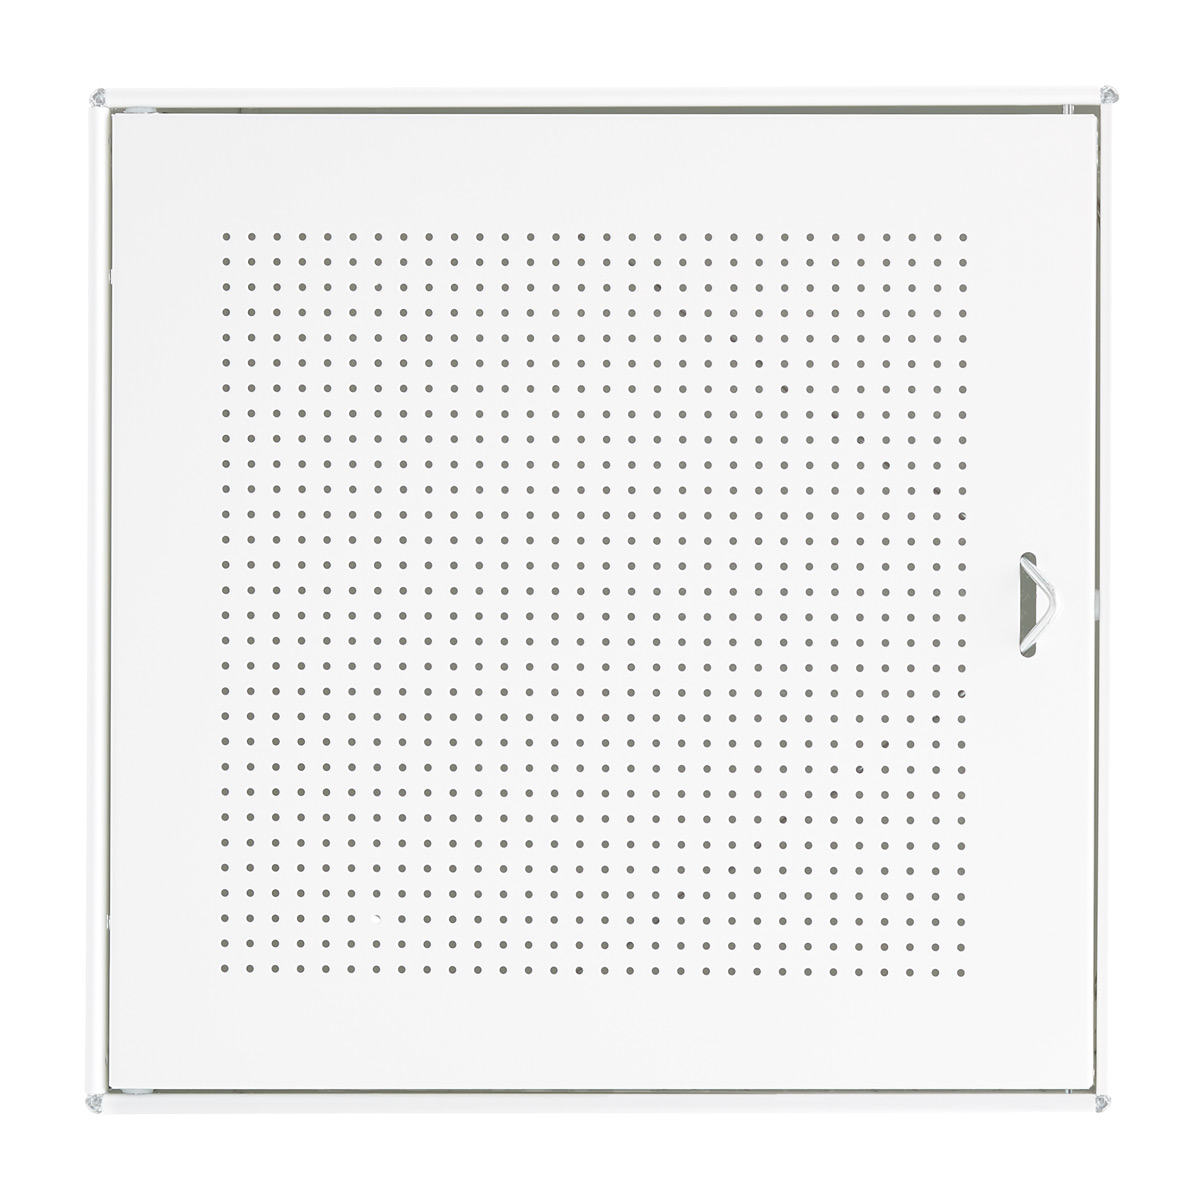 Charmant White Enameled QBO Perforated Steel Cube Door